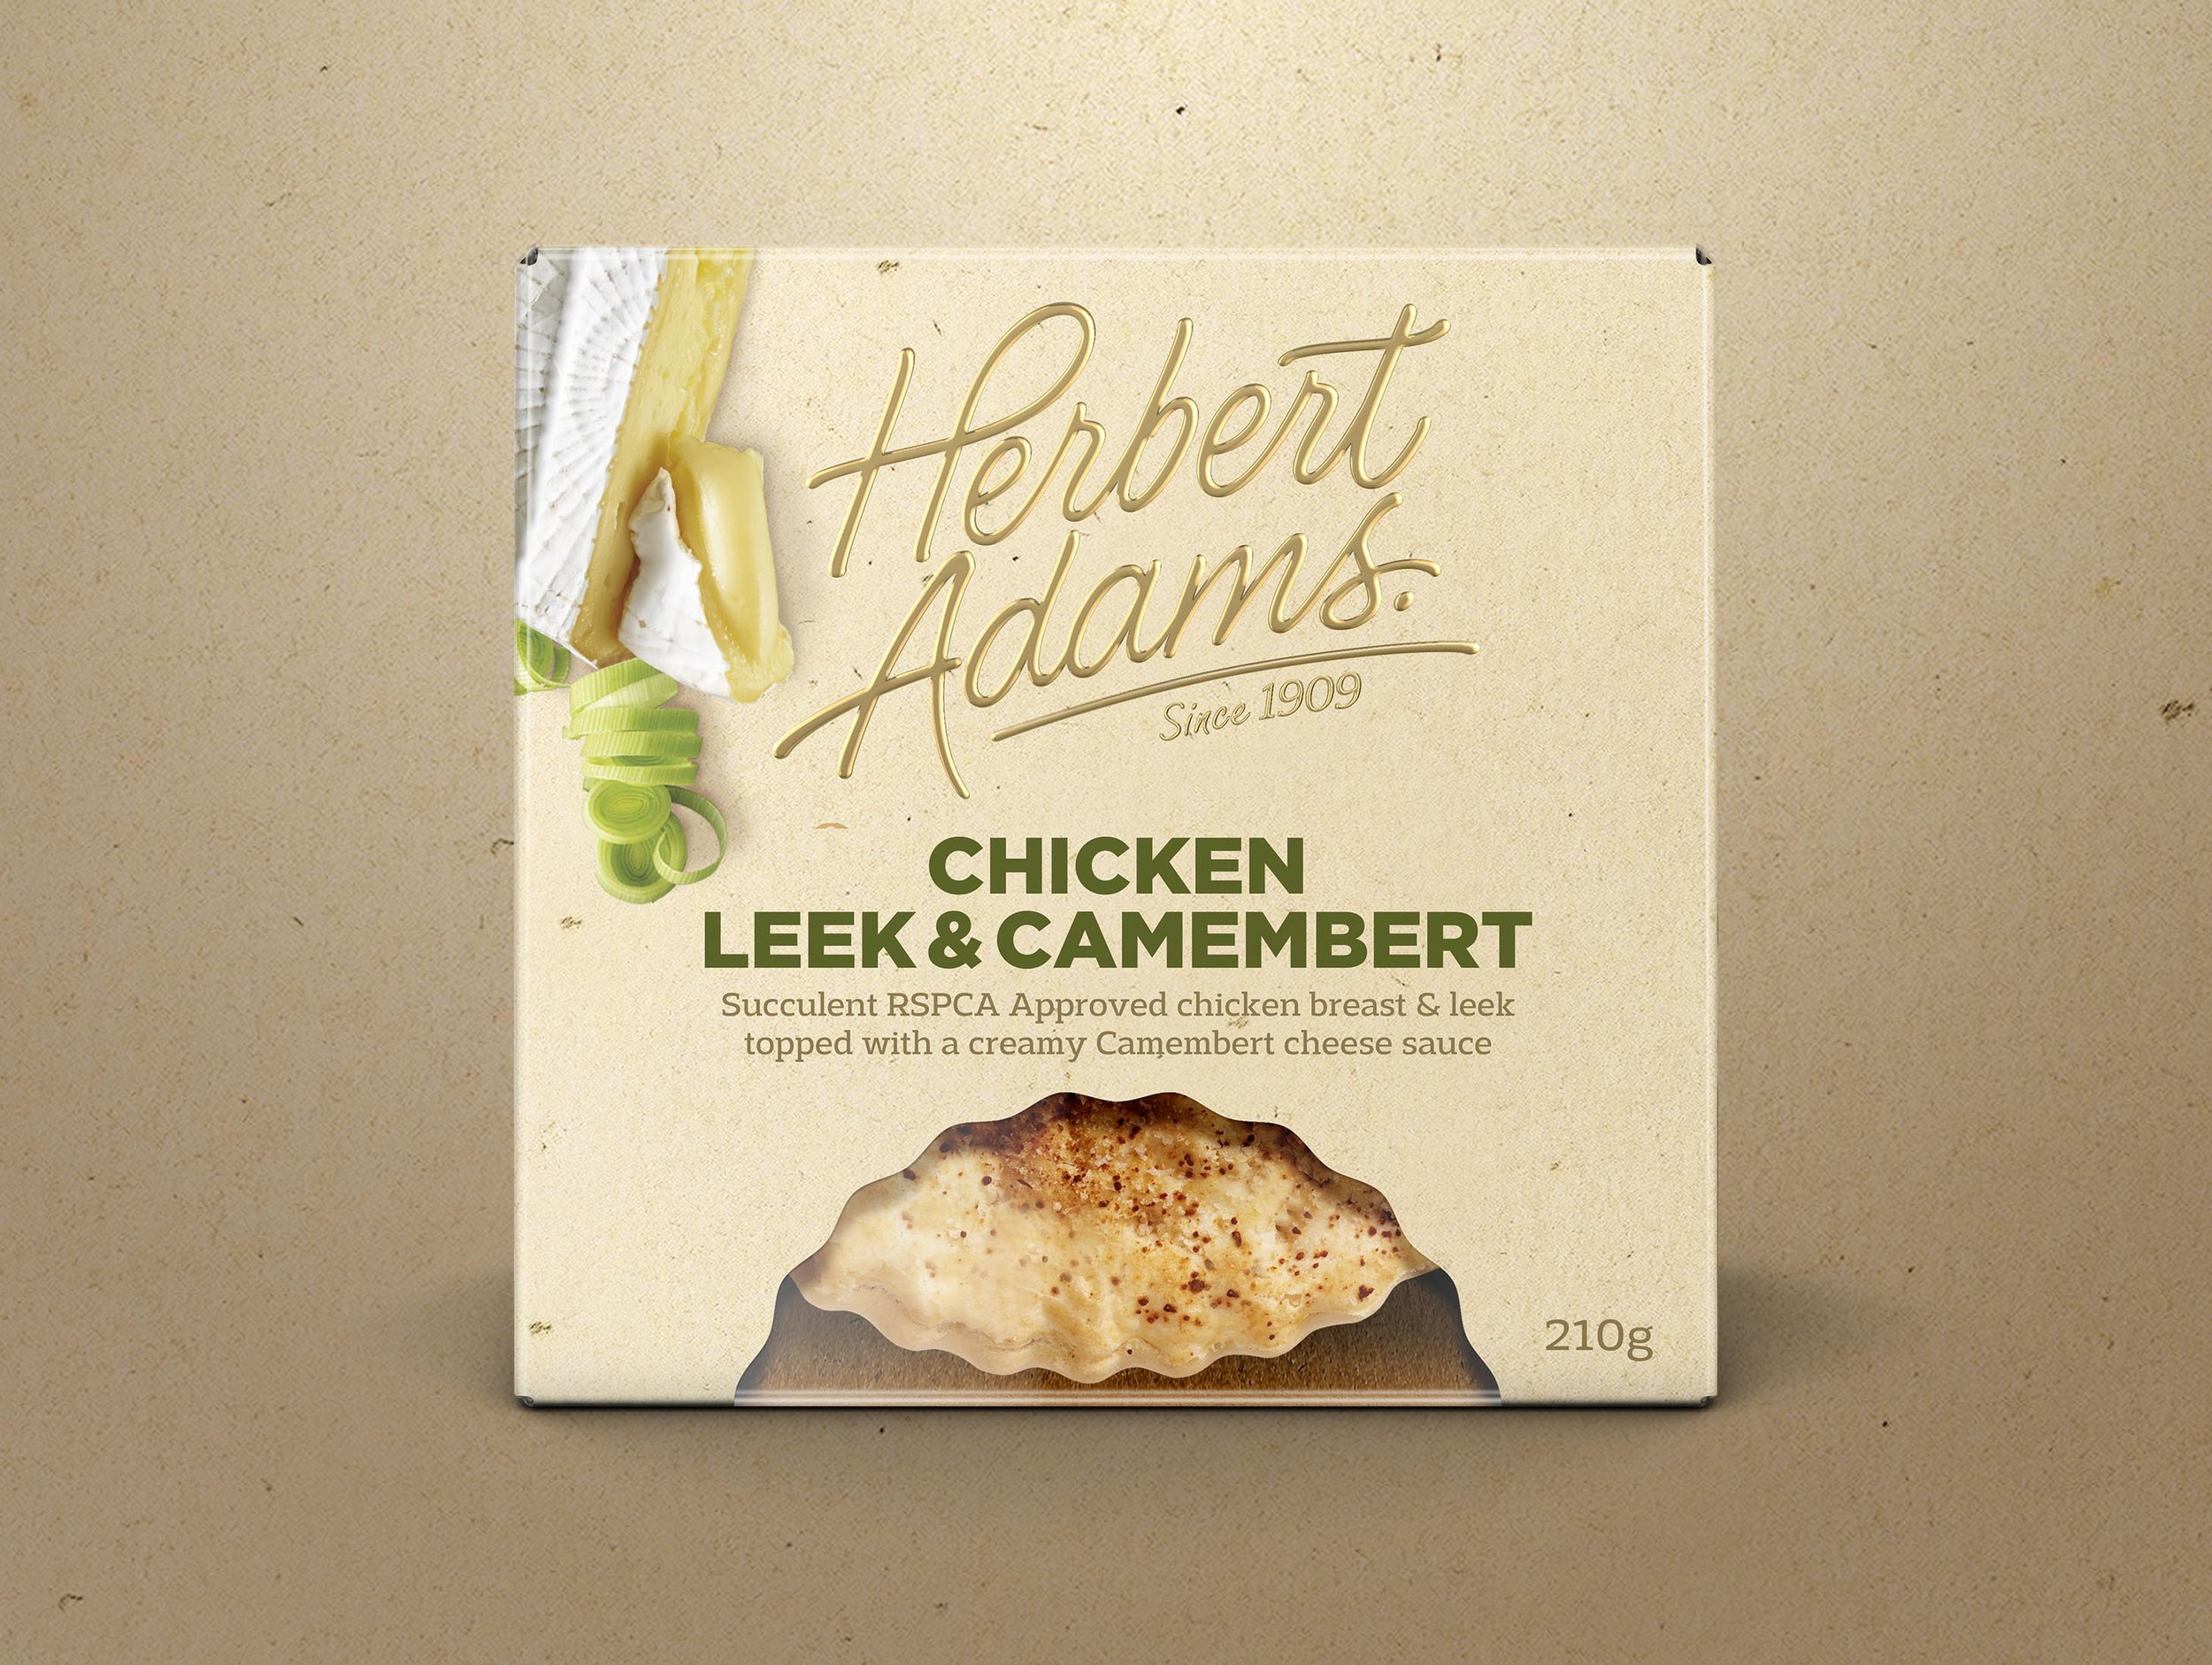 HA CHILLED_ChickenLeekCamembert_TopDown.jpg